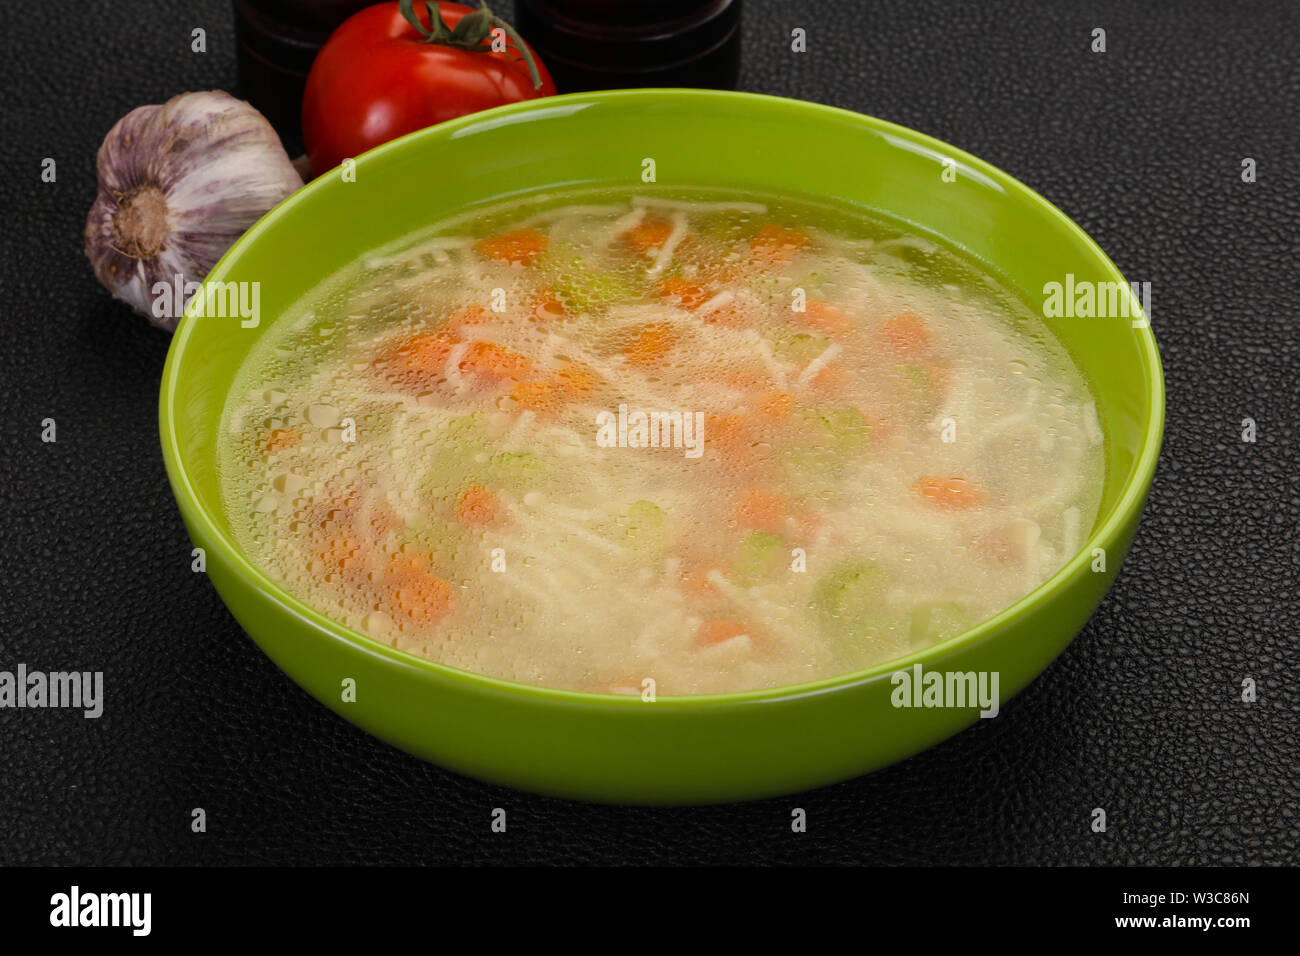 Chicken soup with noodles, carrot and celery - Stock Image